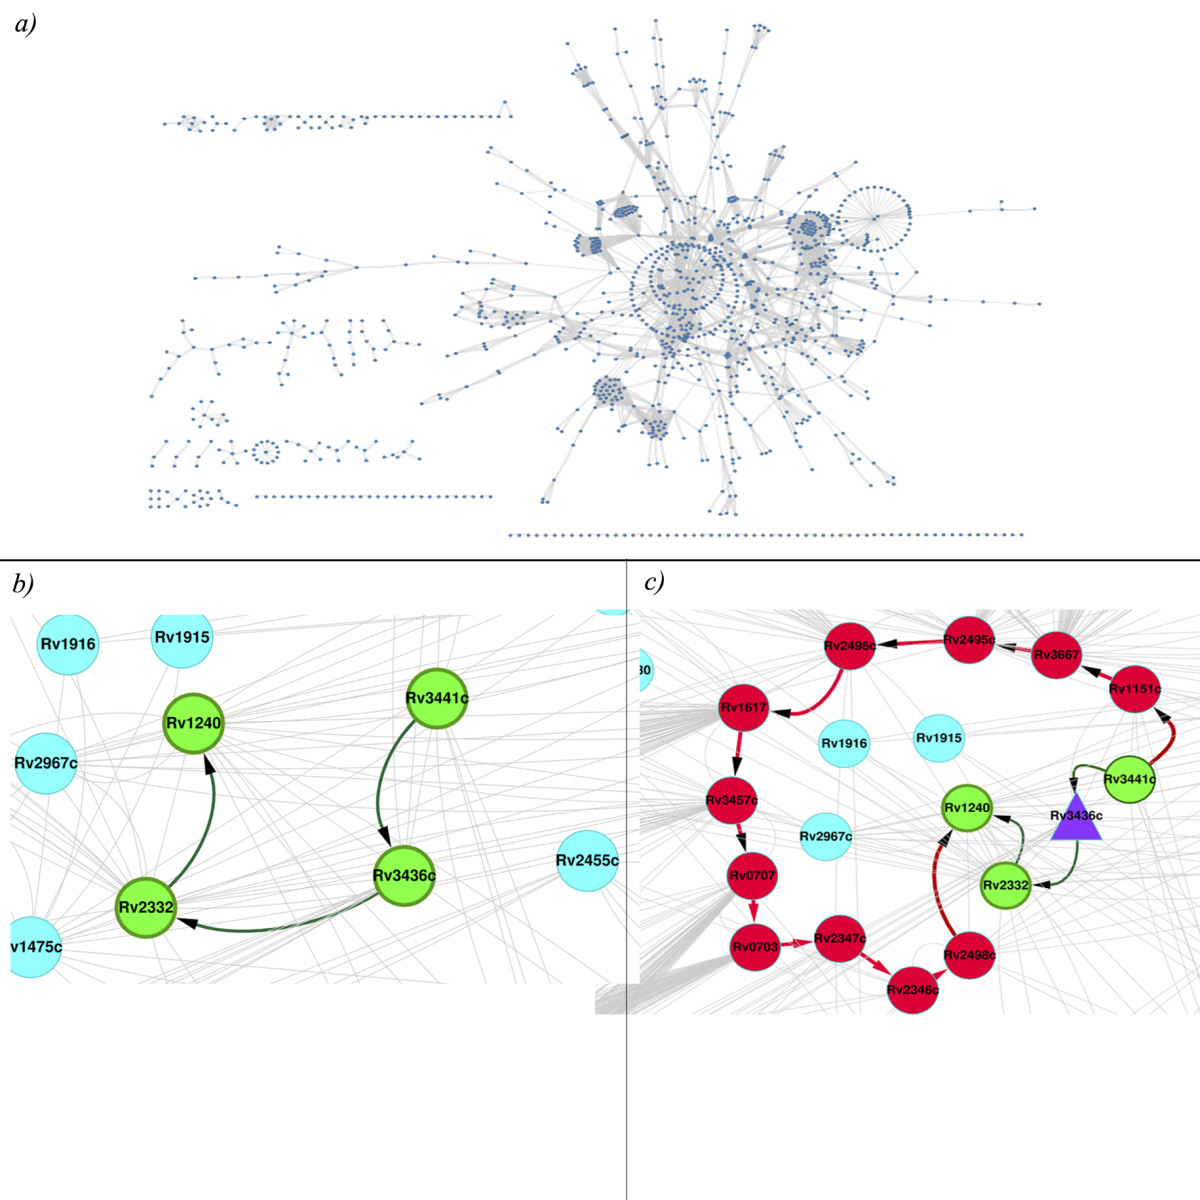 https://static-content.springer.com/image/art%3A10.1186%2F1752-0509-7-132/MediaObjects/12918_2013_Article_1222_Fig3_HTML.jpg